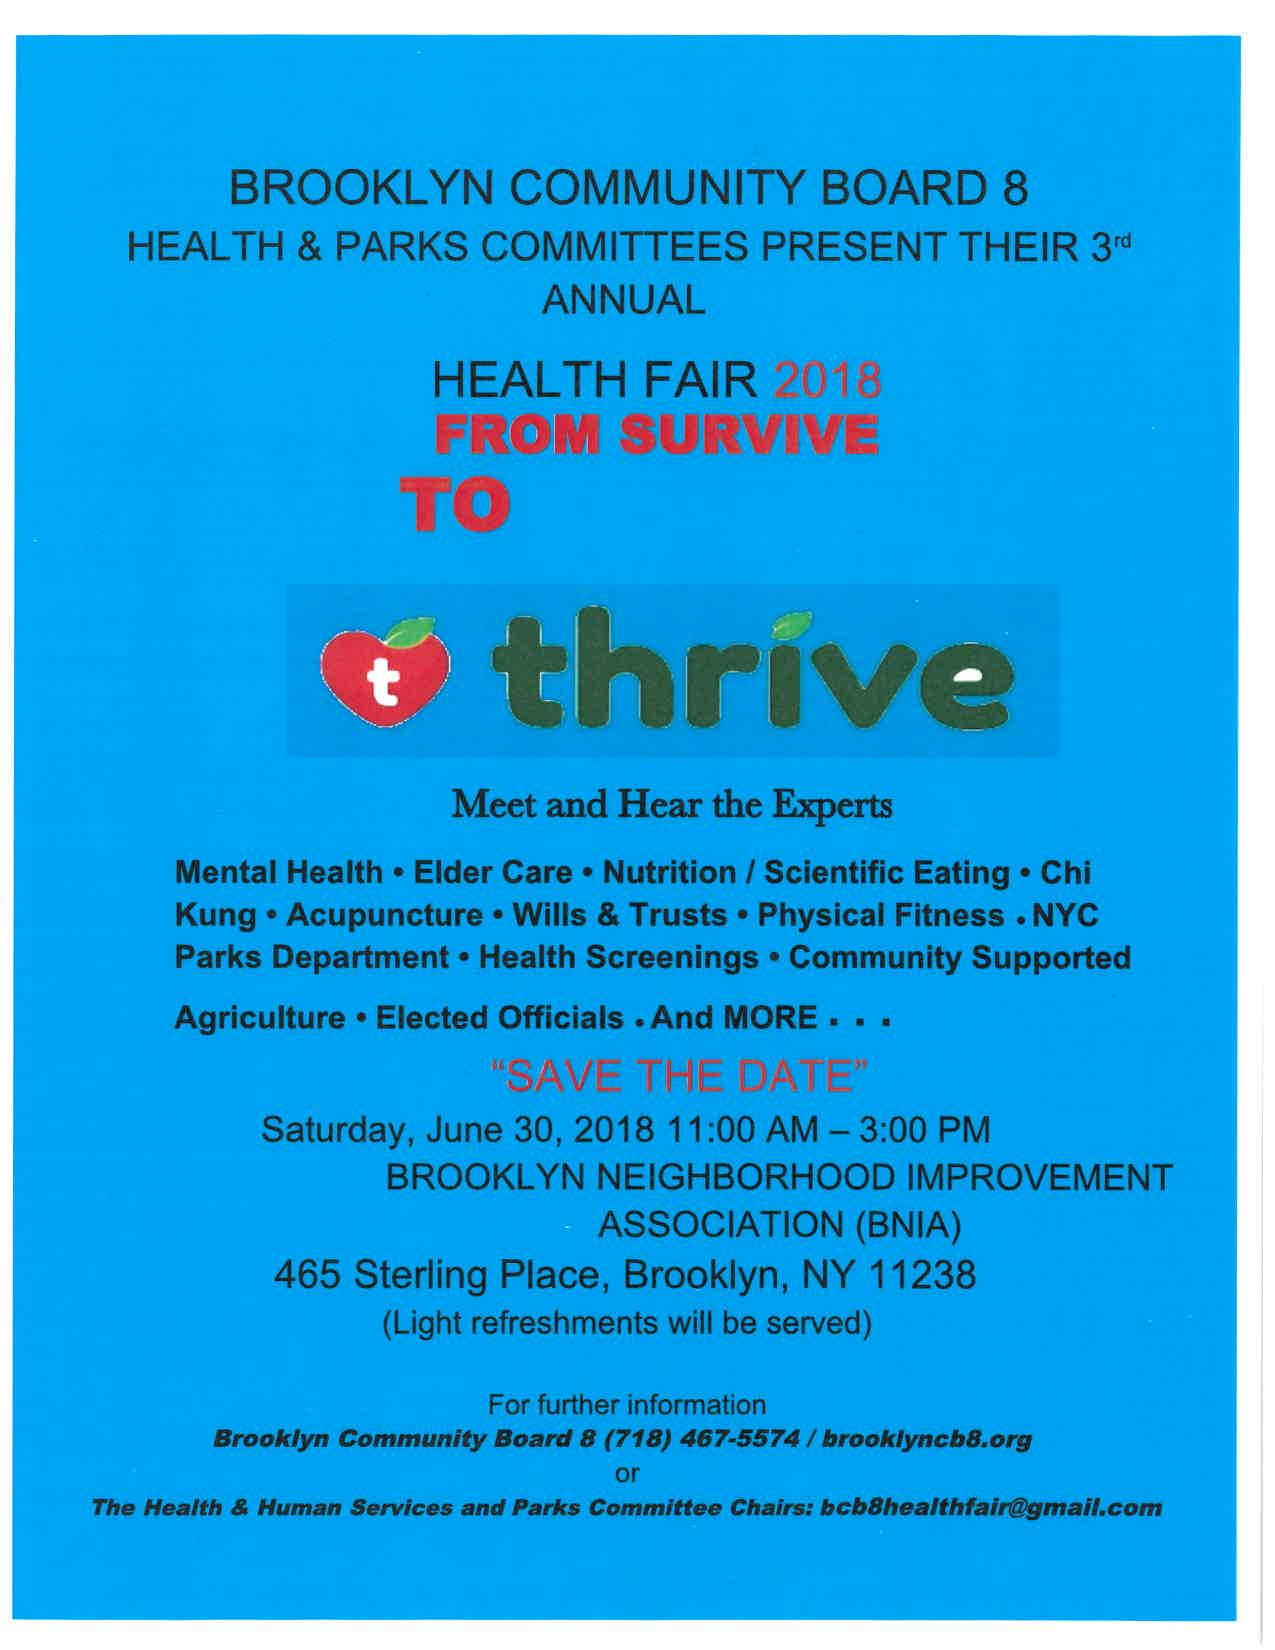 3rd Annual Health Fair | Community Board 8 Brooklyn